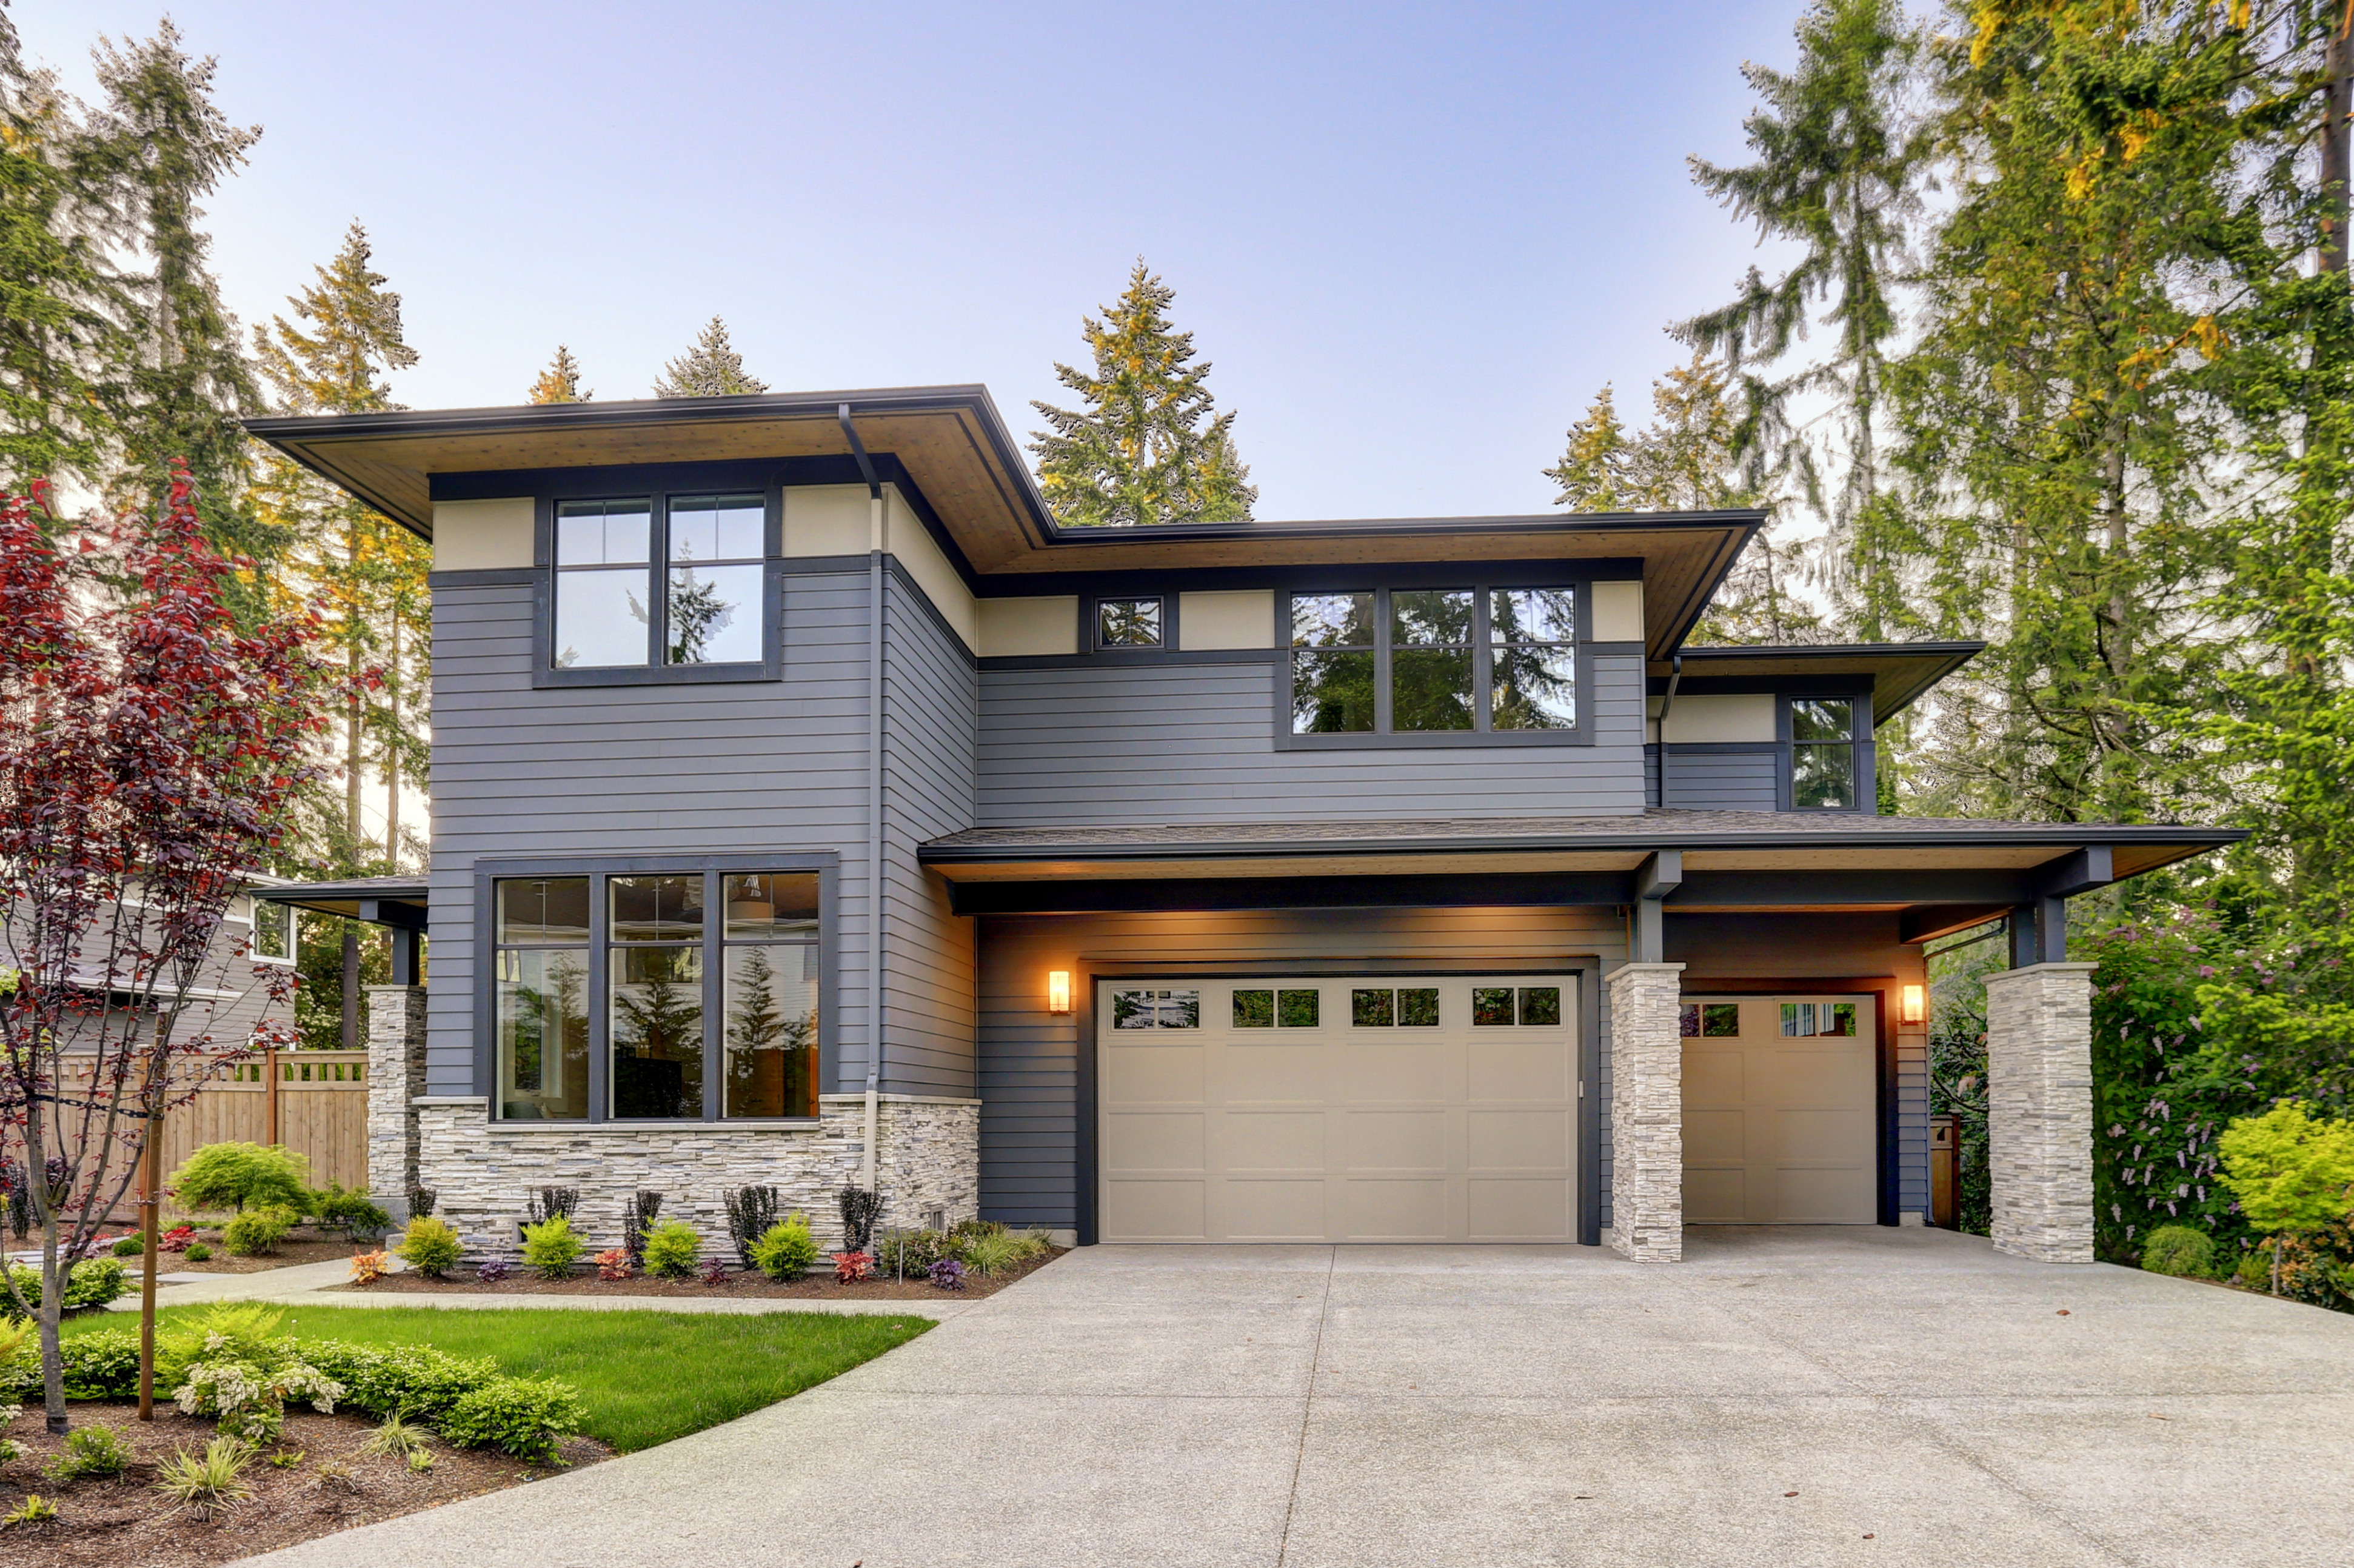 Garage Door Size Options | Home Guides | SF Gate